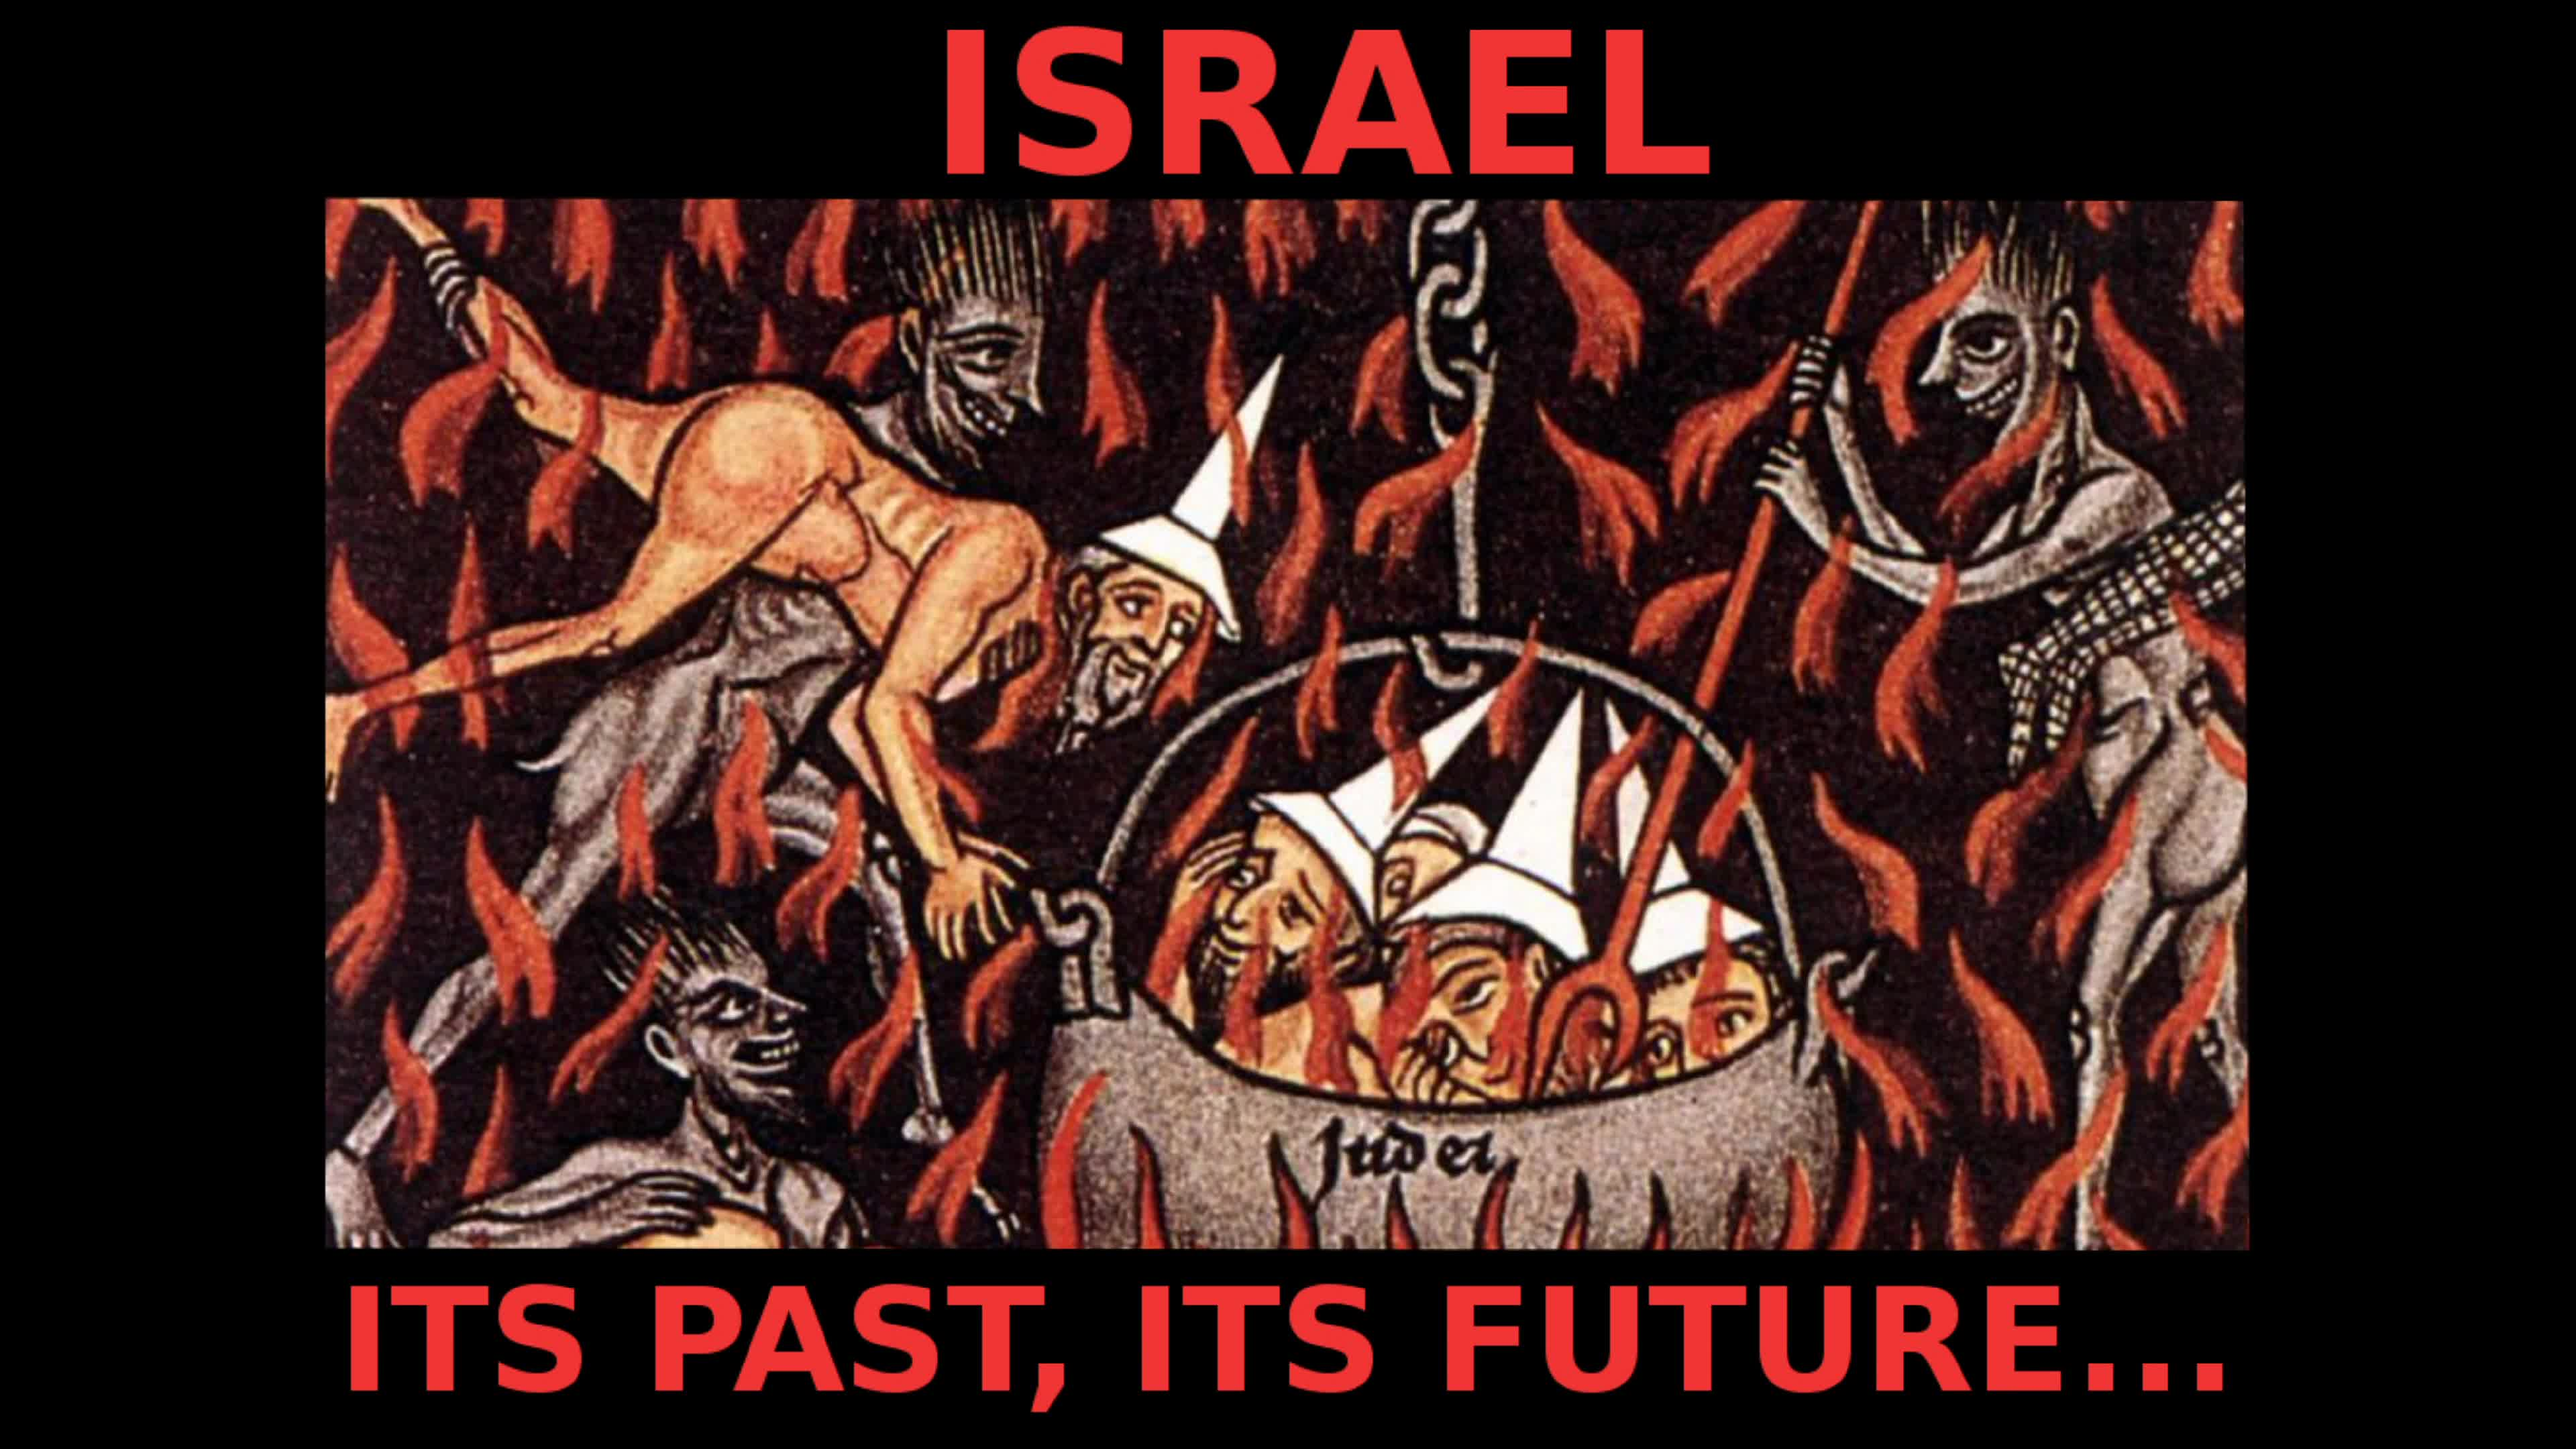 Israel, Its past, Its Future